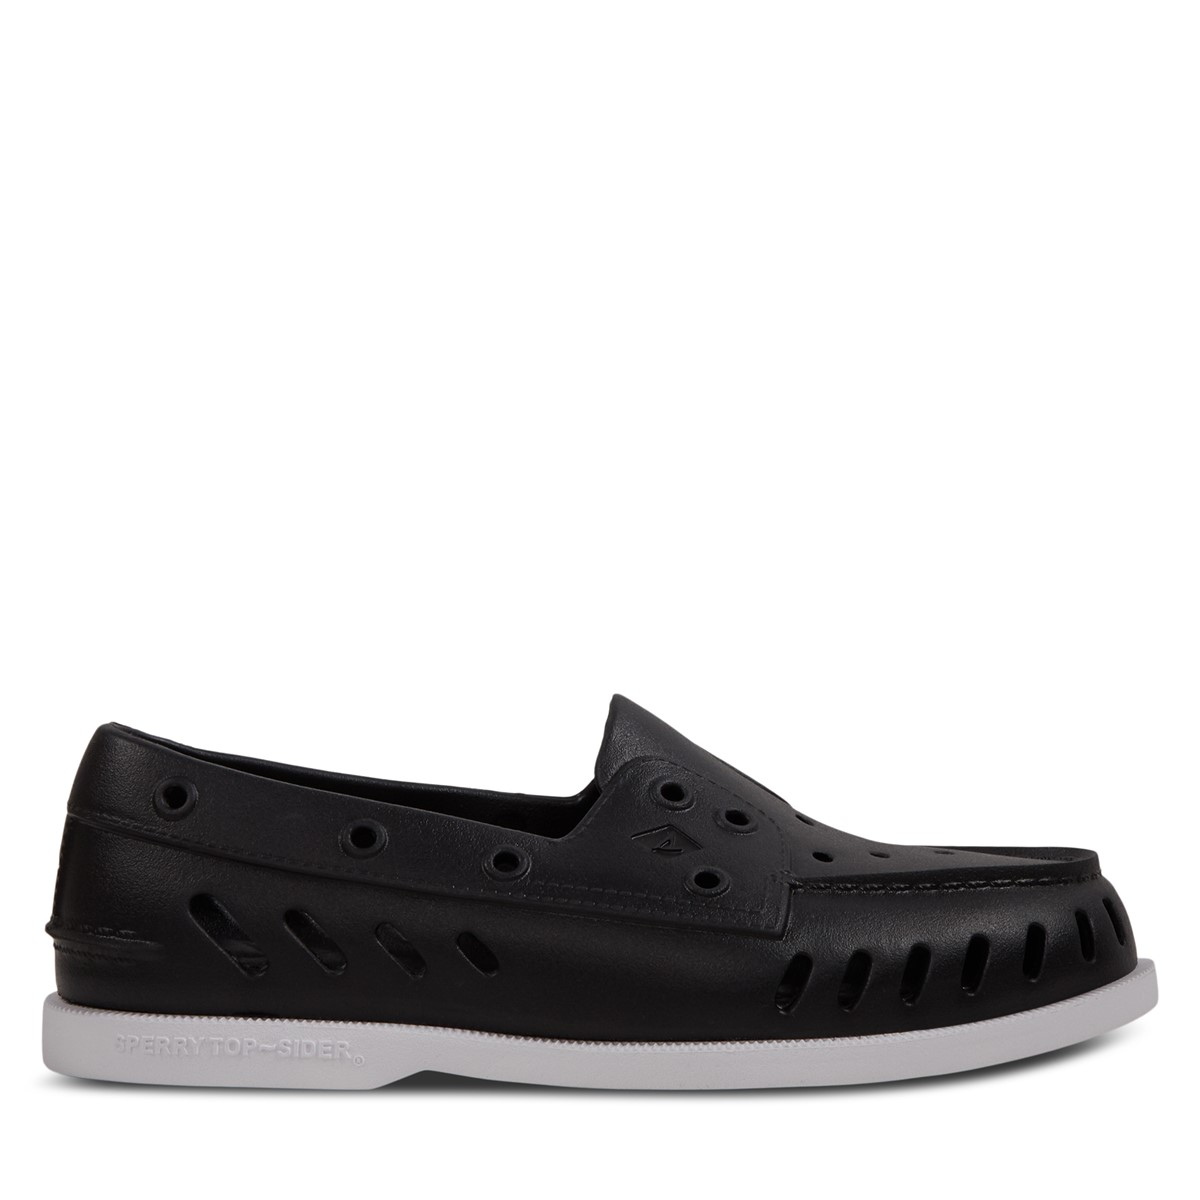 Women's Authentic Original Float Slip-On Boat Shoes in Black/White